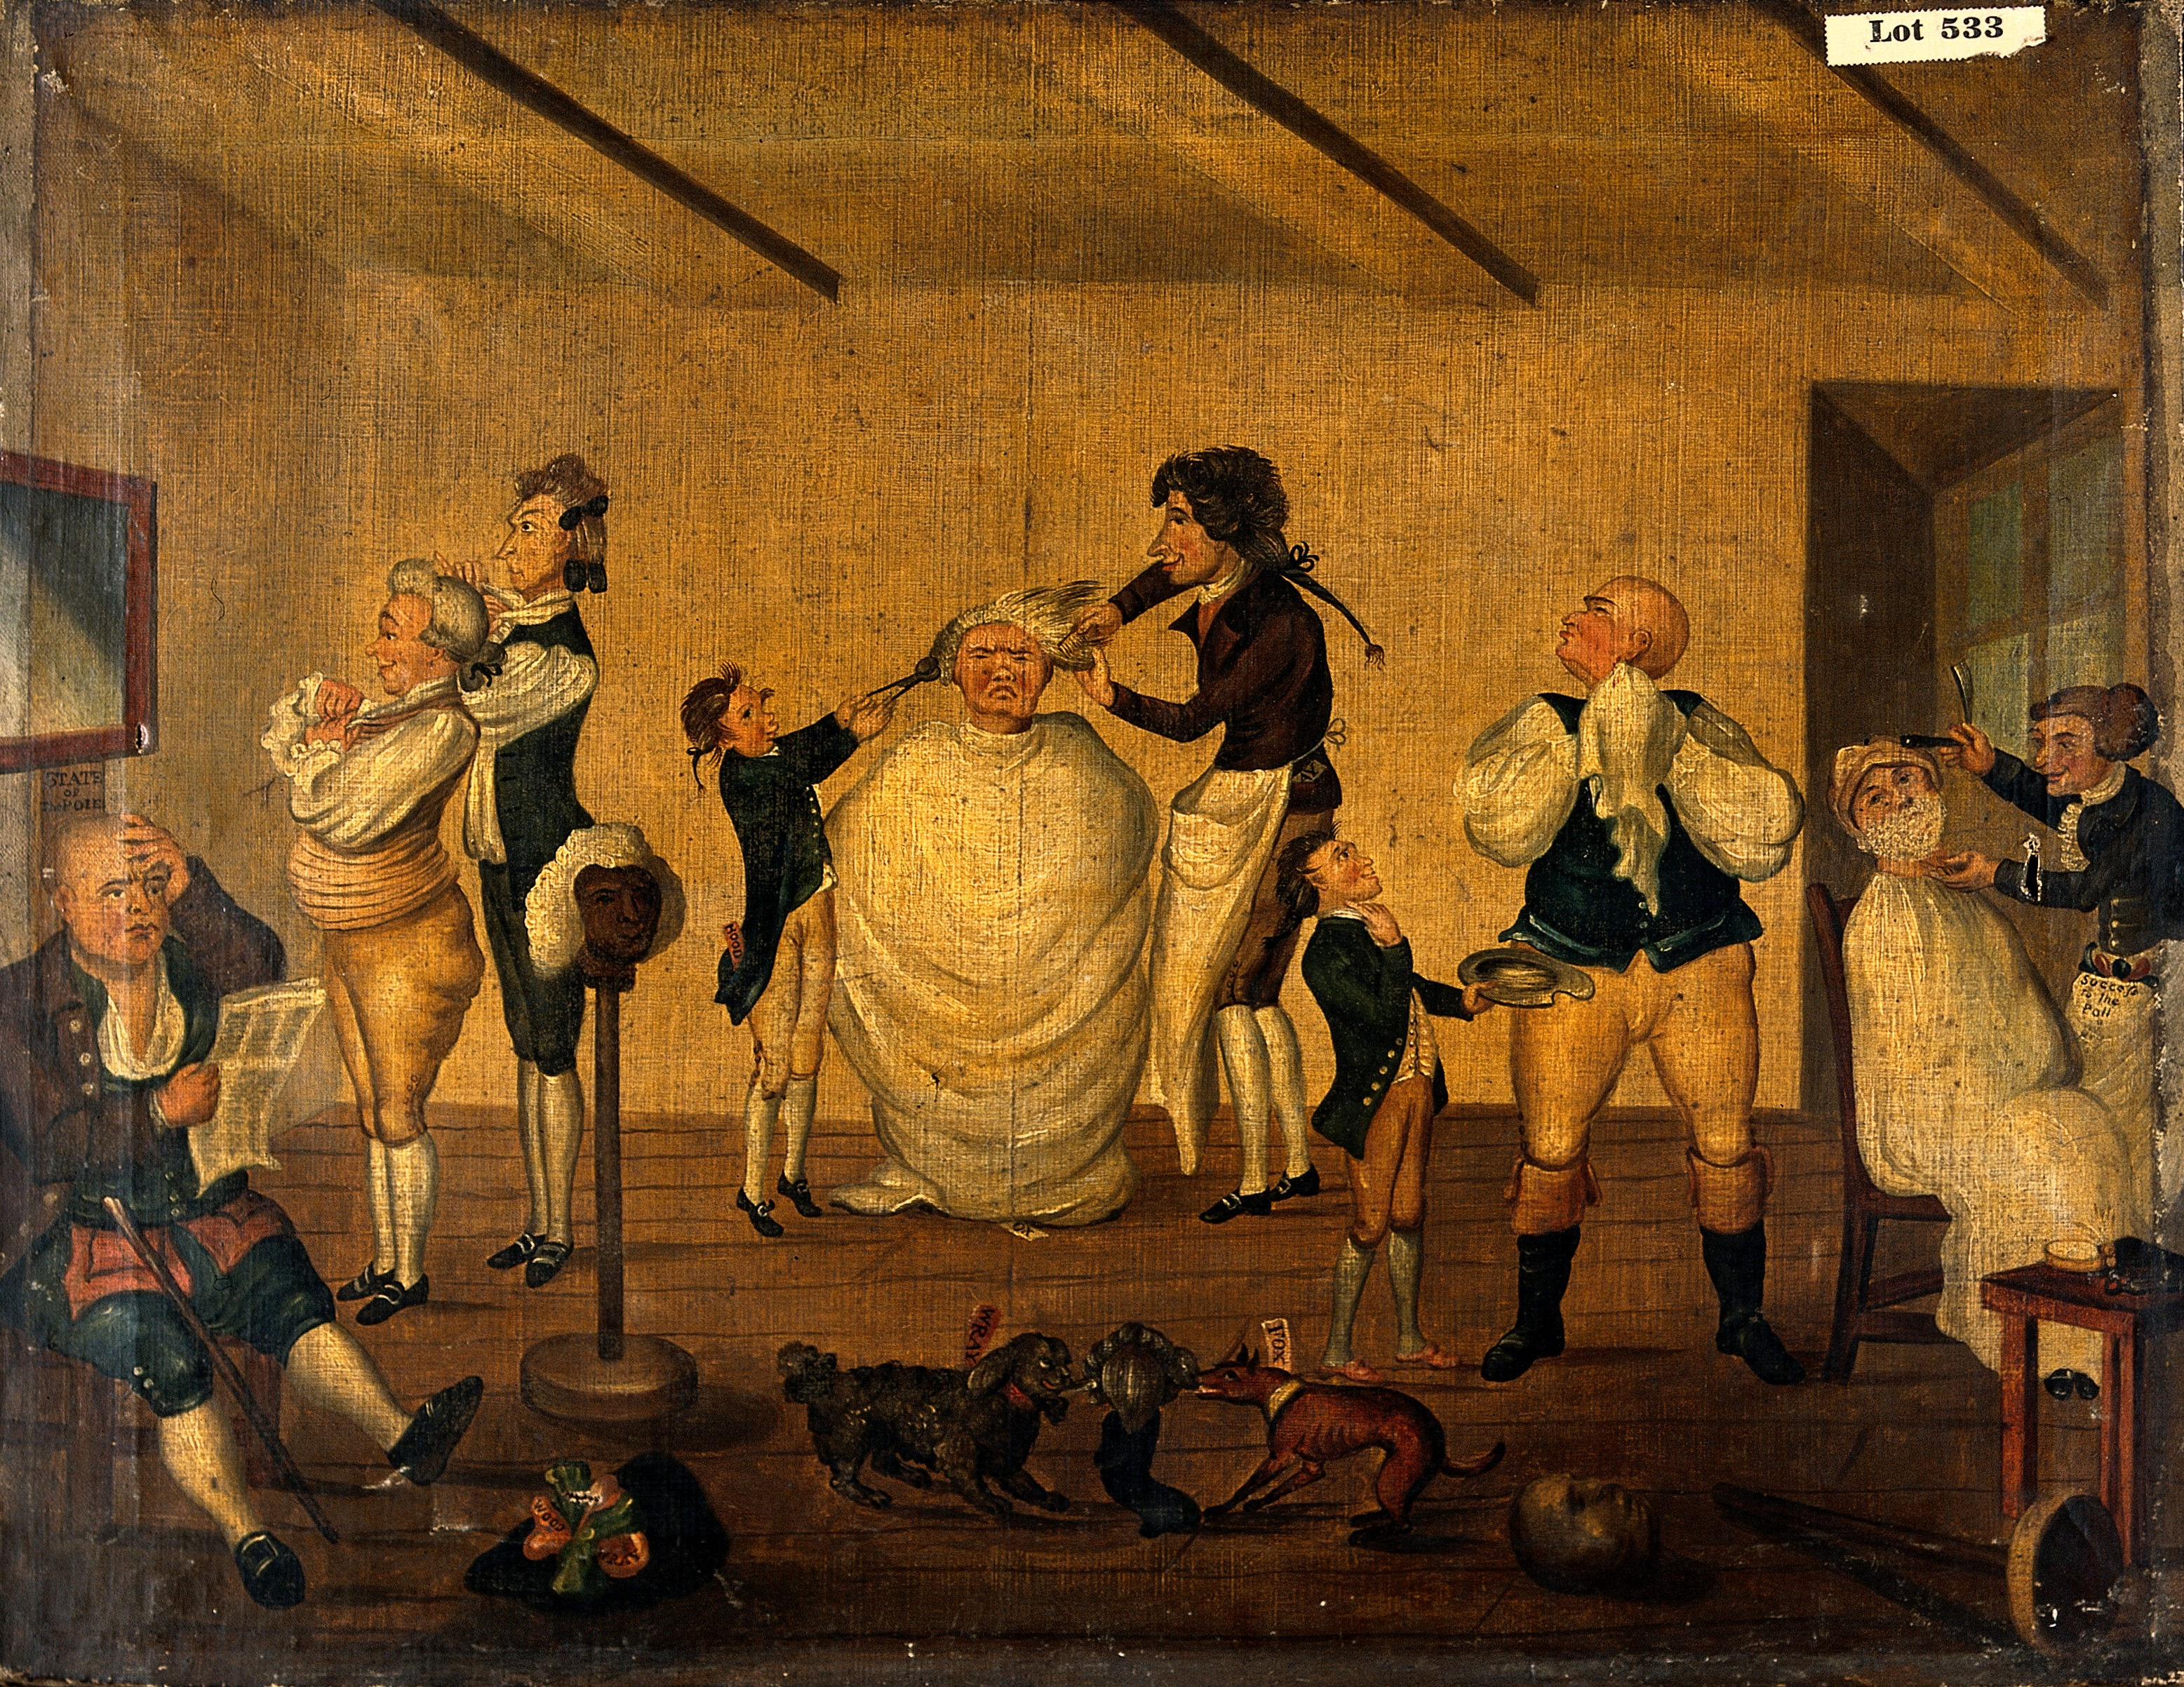 File:A barber's shop, 1784. Oil painting after Henry William Bunb ...